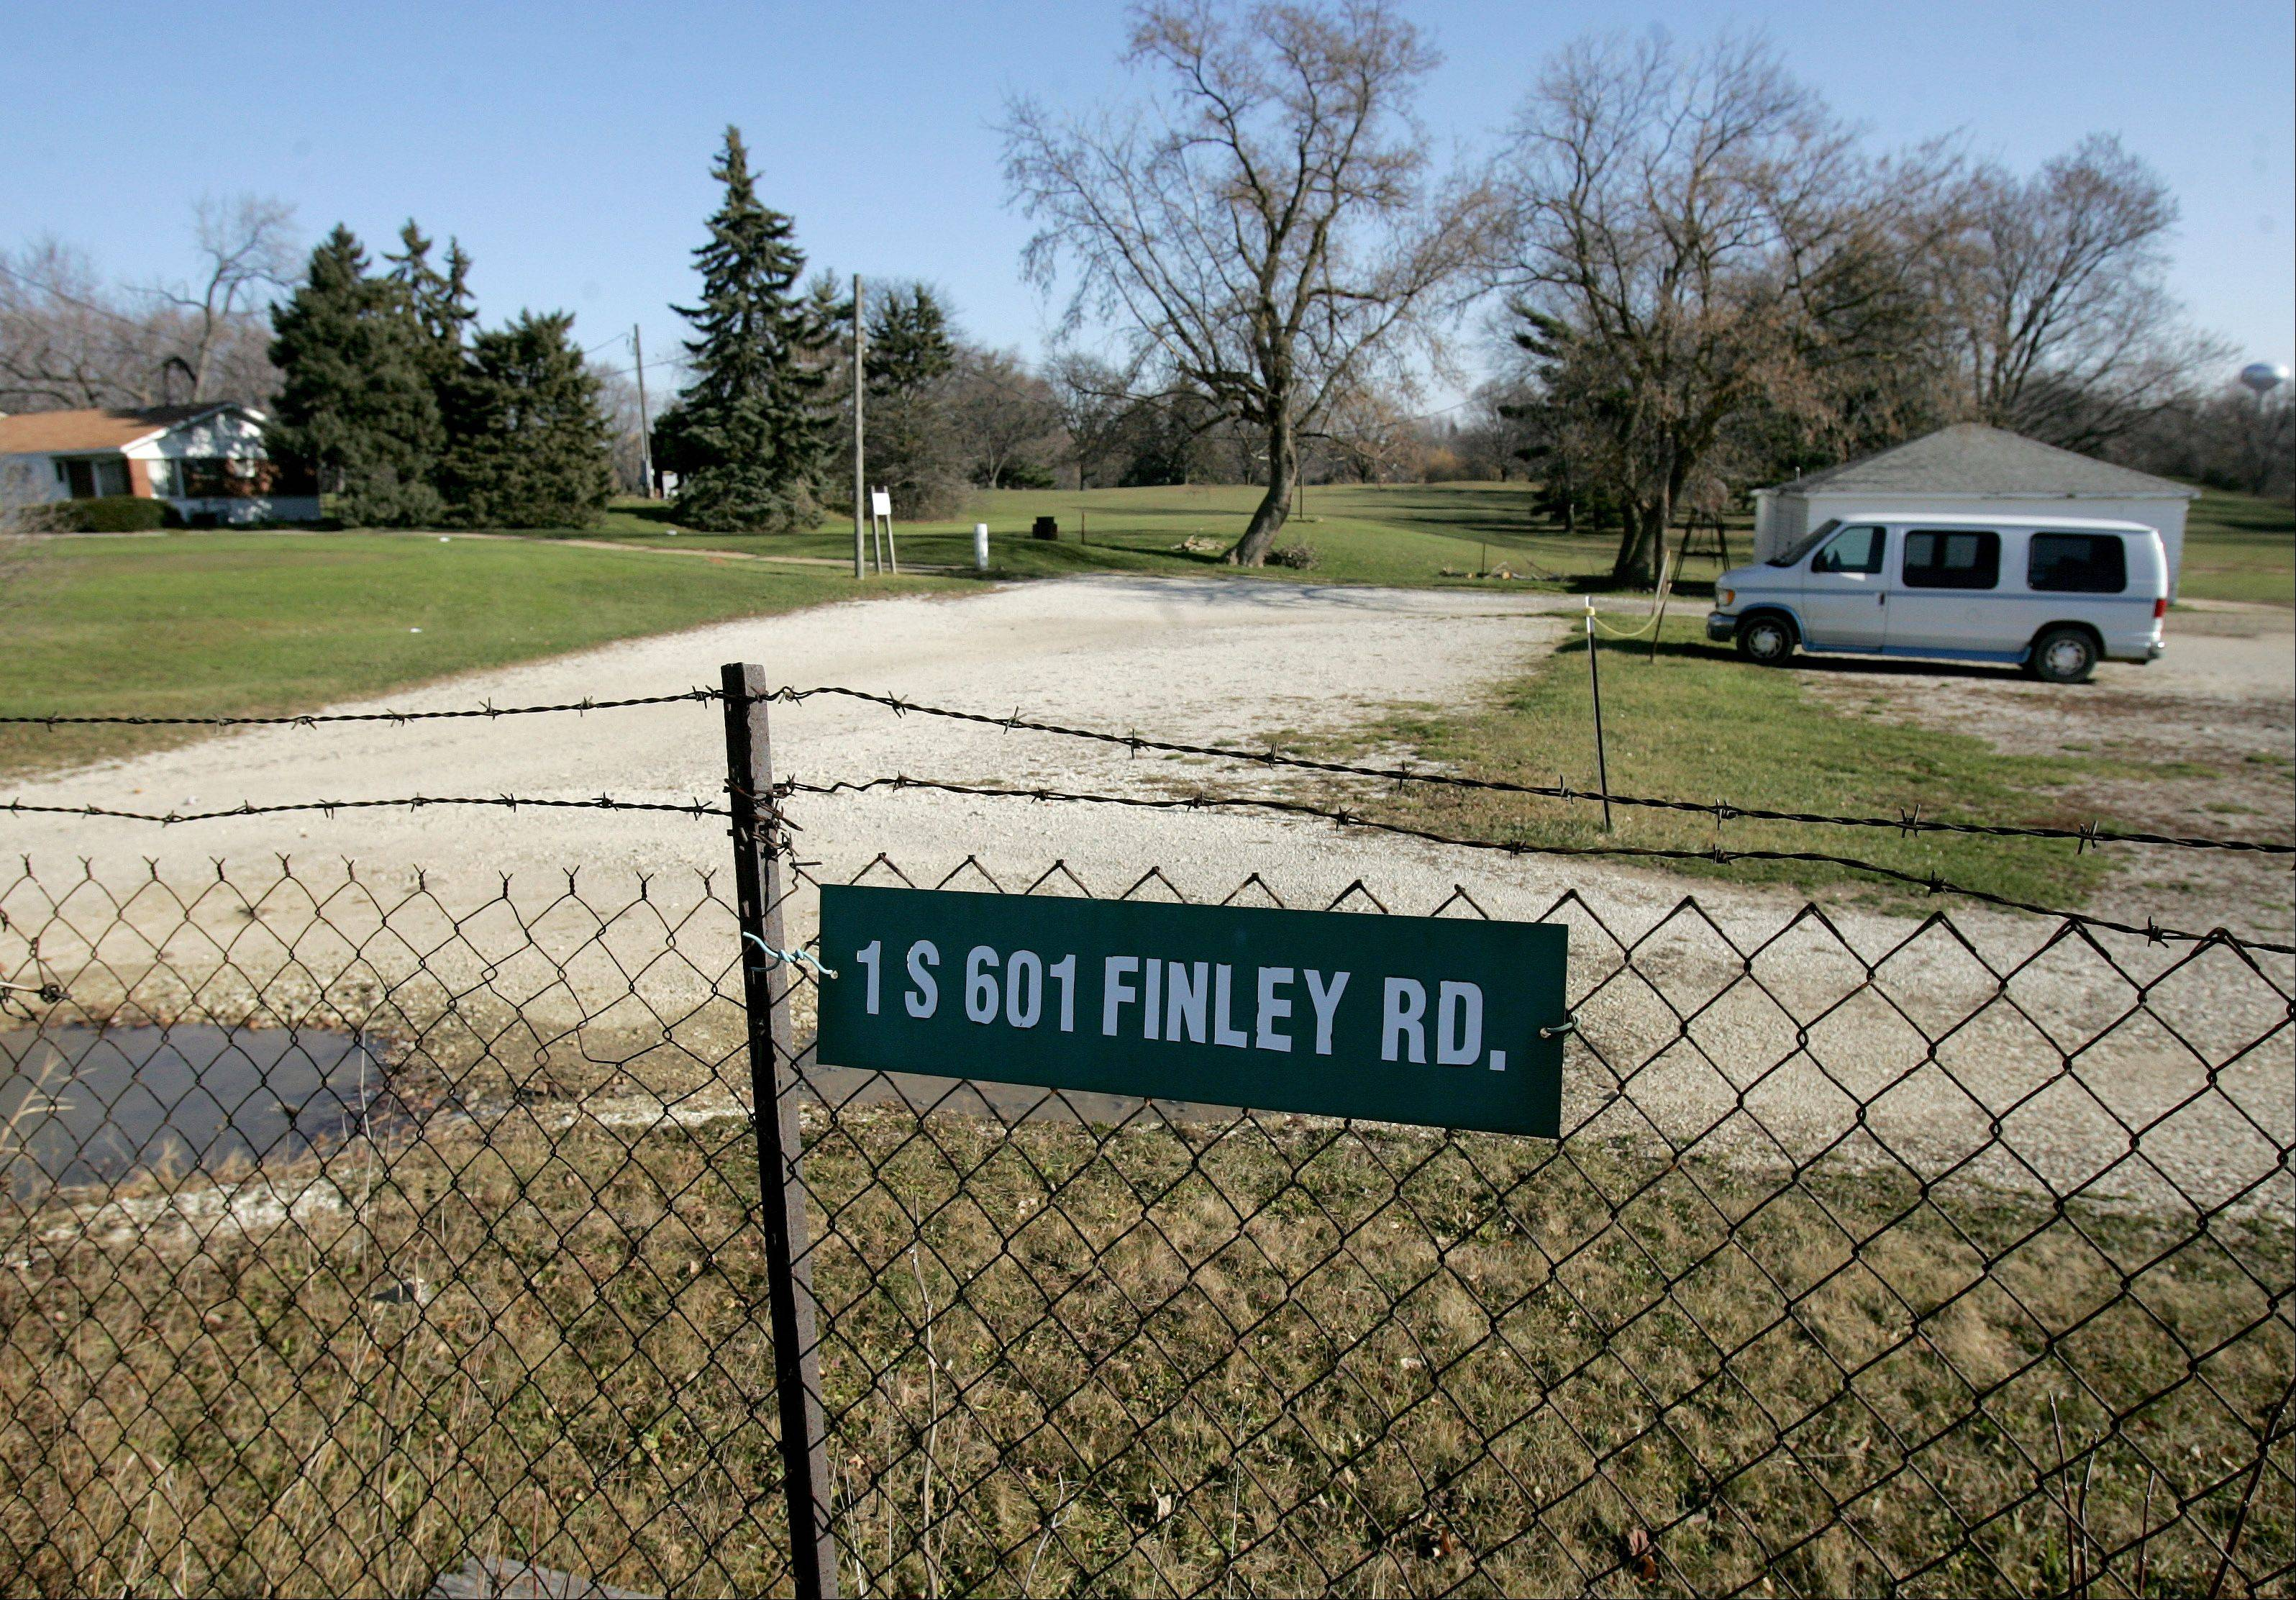 Lombard officials are asking DuPage County to deny a request to rezone the Ken-Loch Golf Links property along Finley Road, north of 22nd Street. The county's zoning board of appeals is expected to make a recommendation in October.